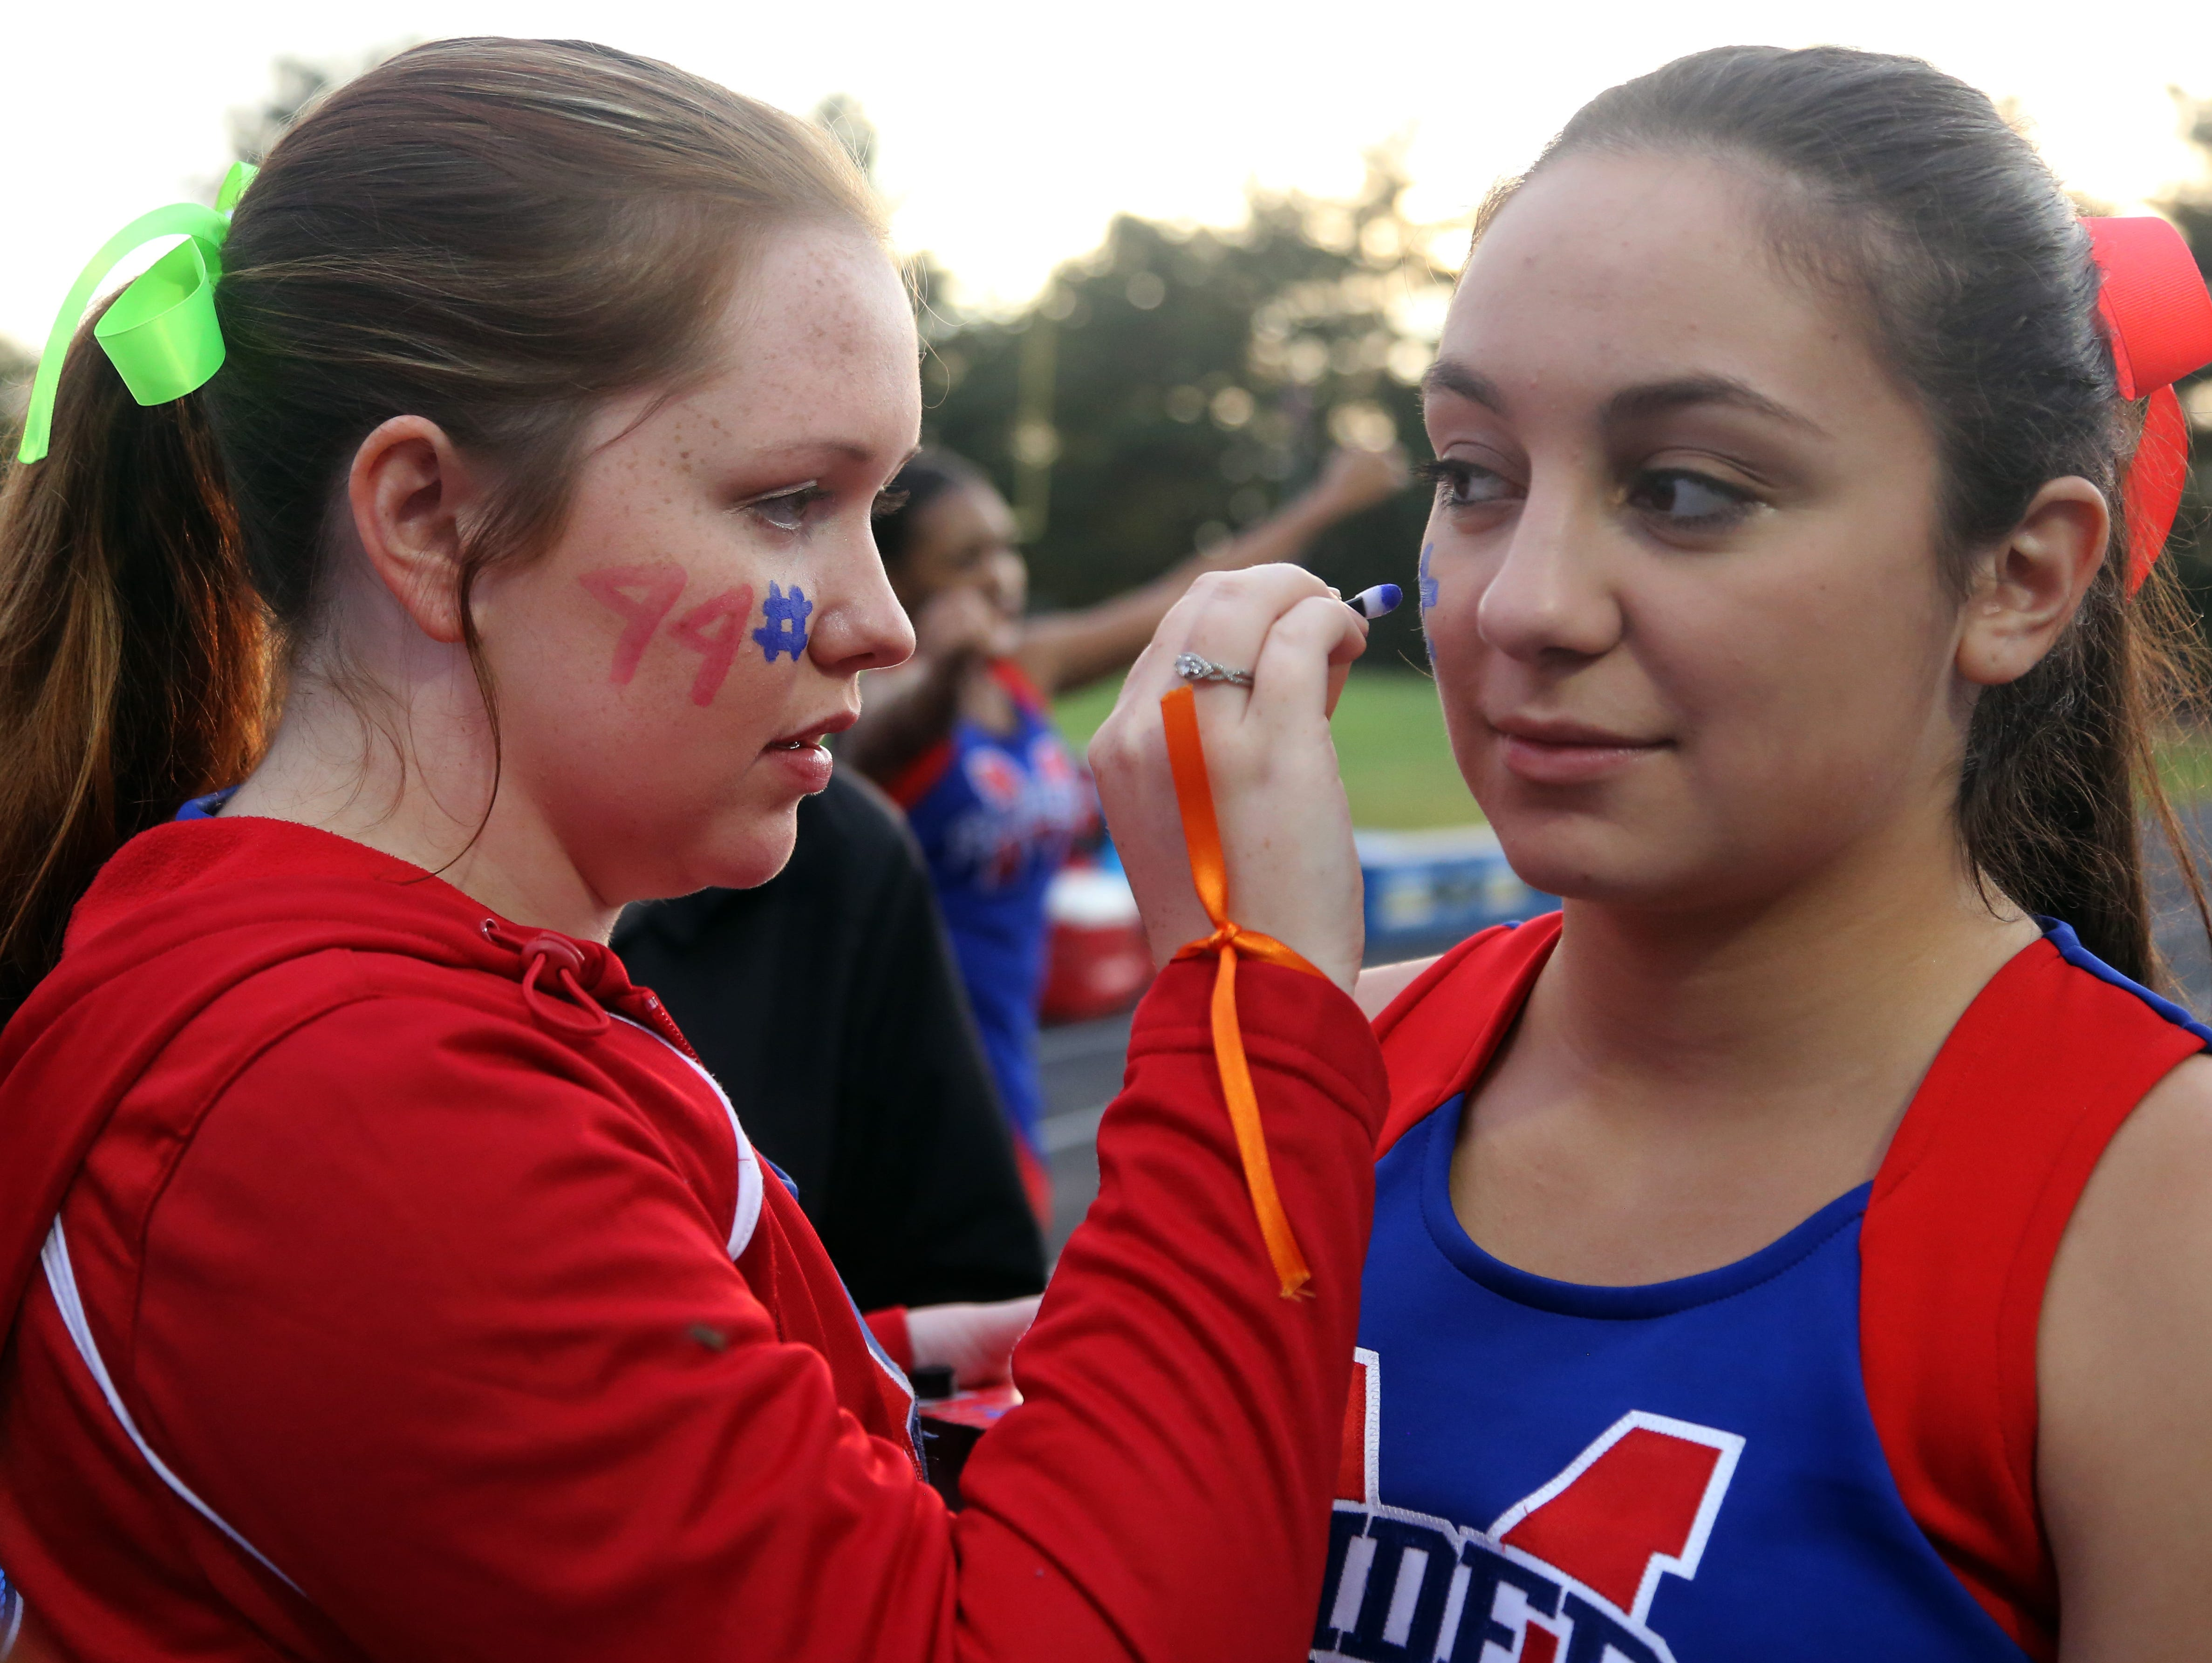 McGavock cheerleader Alaina Solis, left, paints #44 on fellow cheerleader Lauren Estrada's cheek in honor of football player Hunter Jackson, who wore No. 44, prior to the start of their home game against Cane Ridge in September.